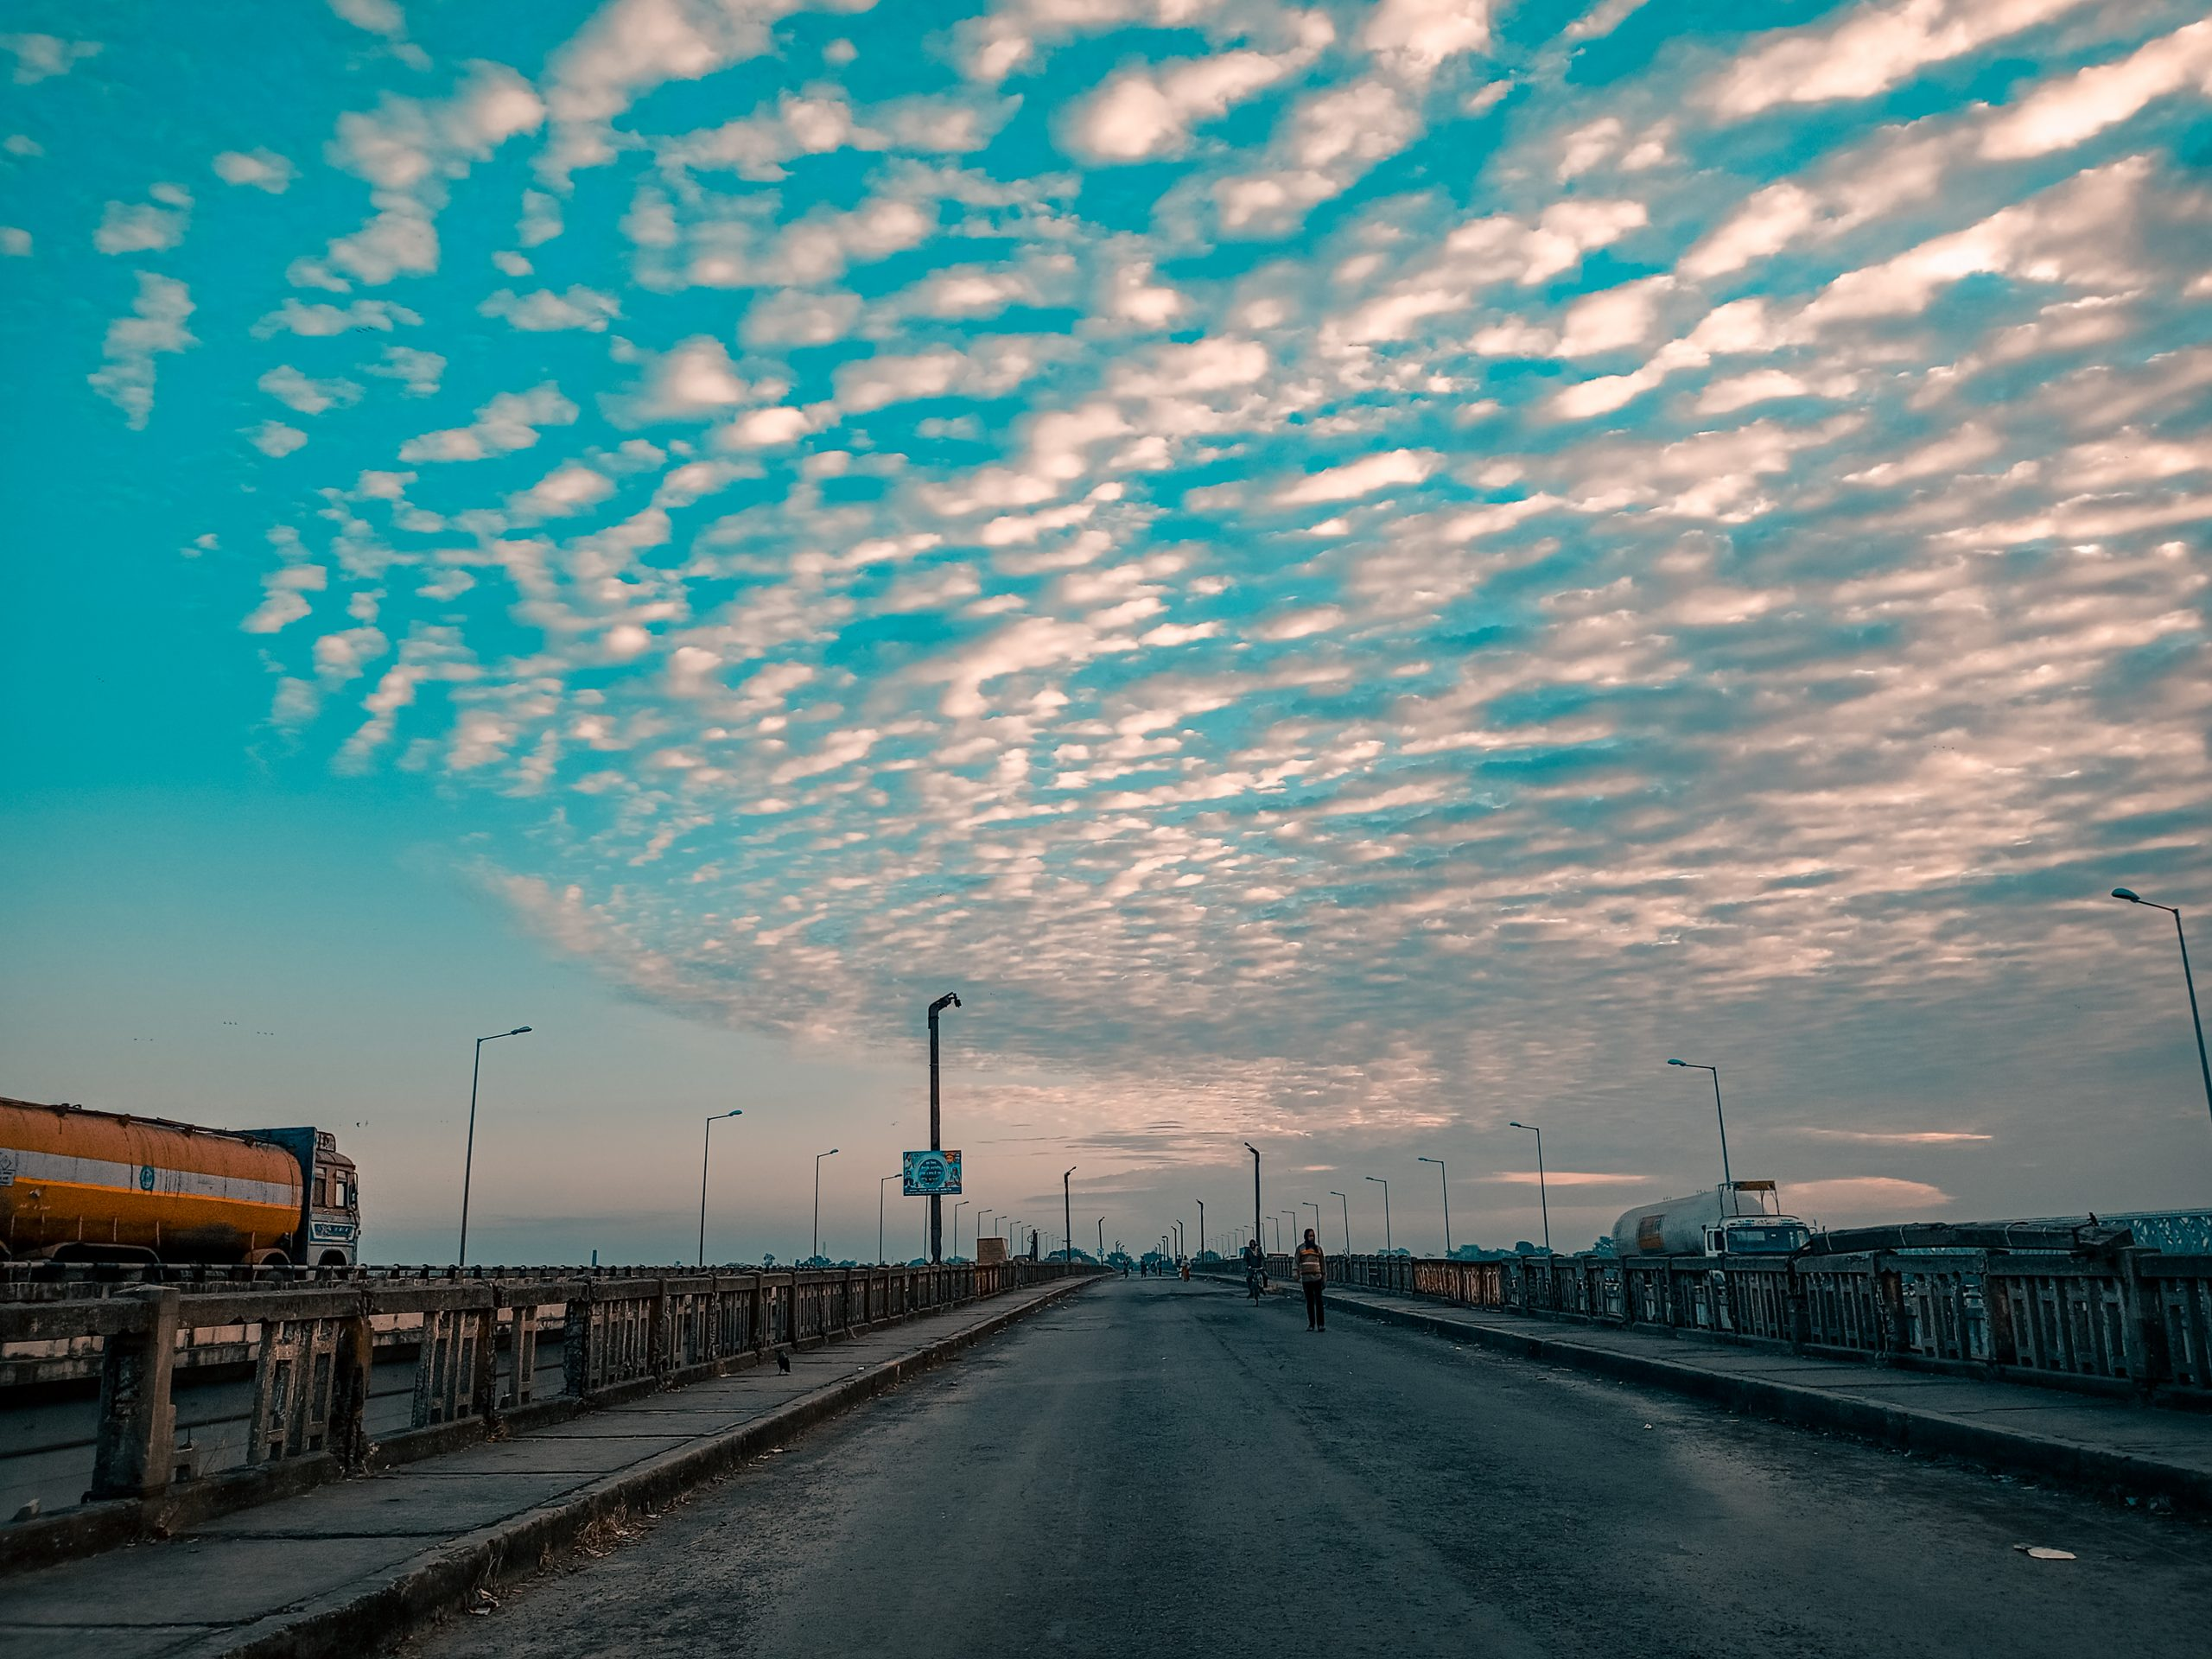 Snap of a highway with fascinating clouds